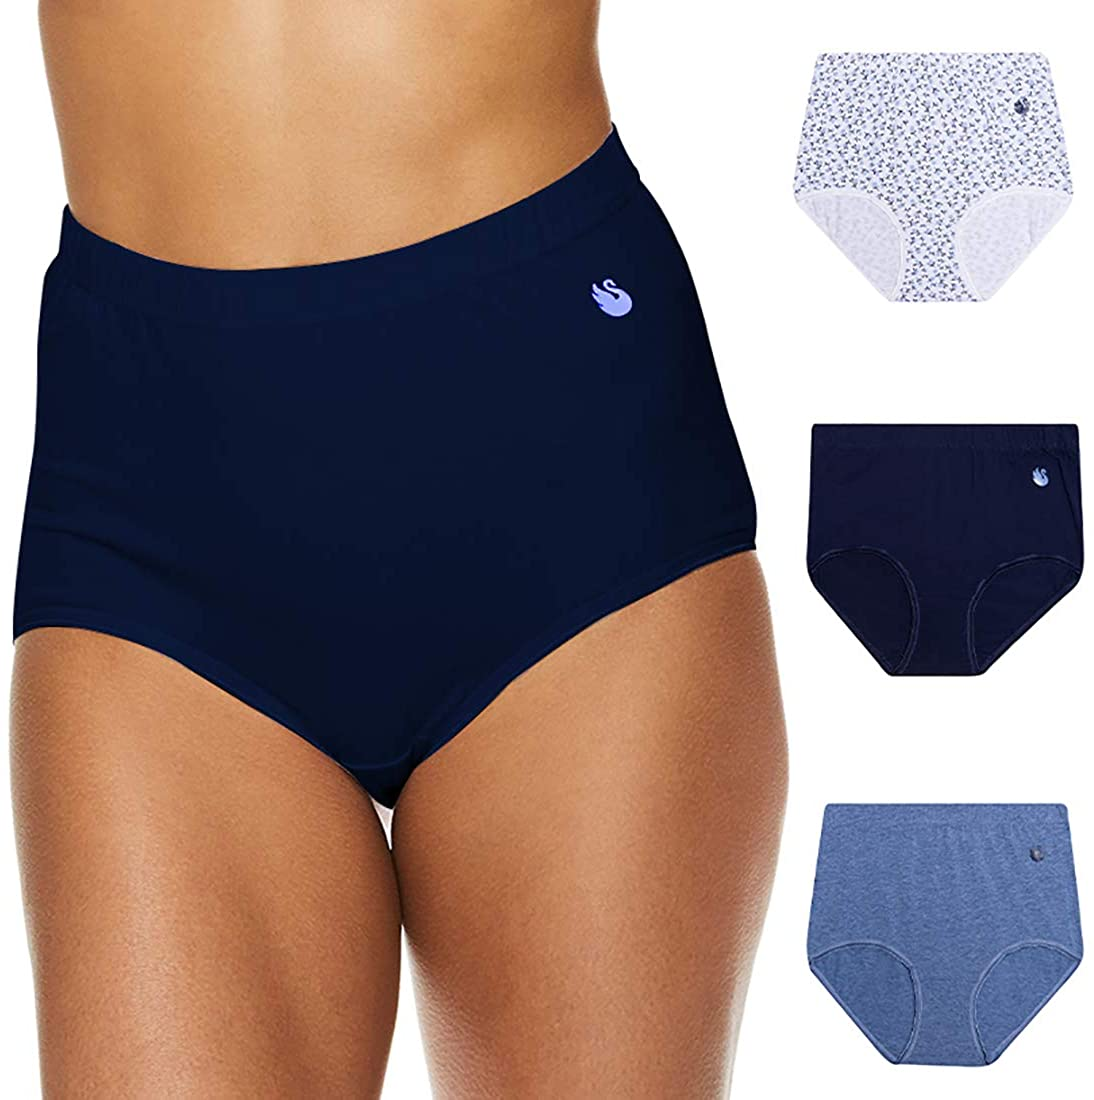 Gloria Vanderbilt Womens High Waisted Underwear Tagless Full Coverage Cotton Brief Panties for Women